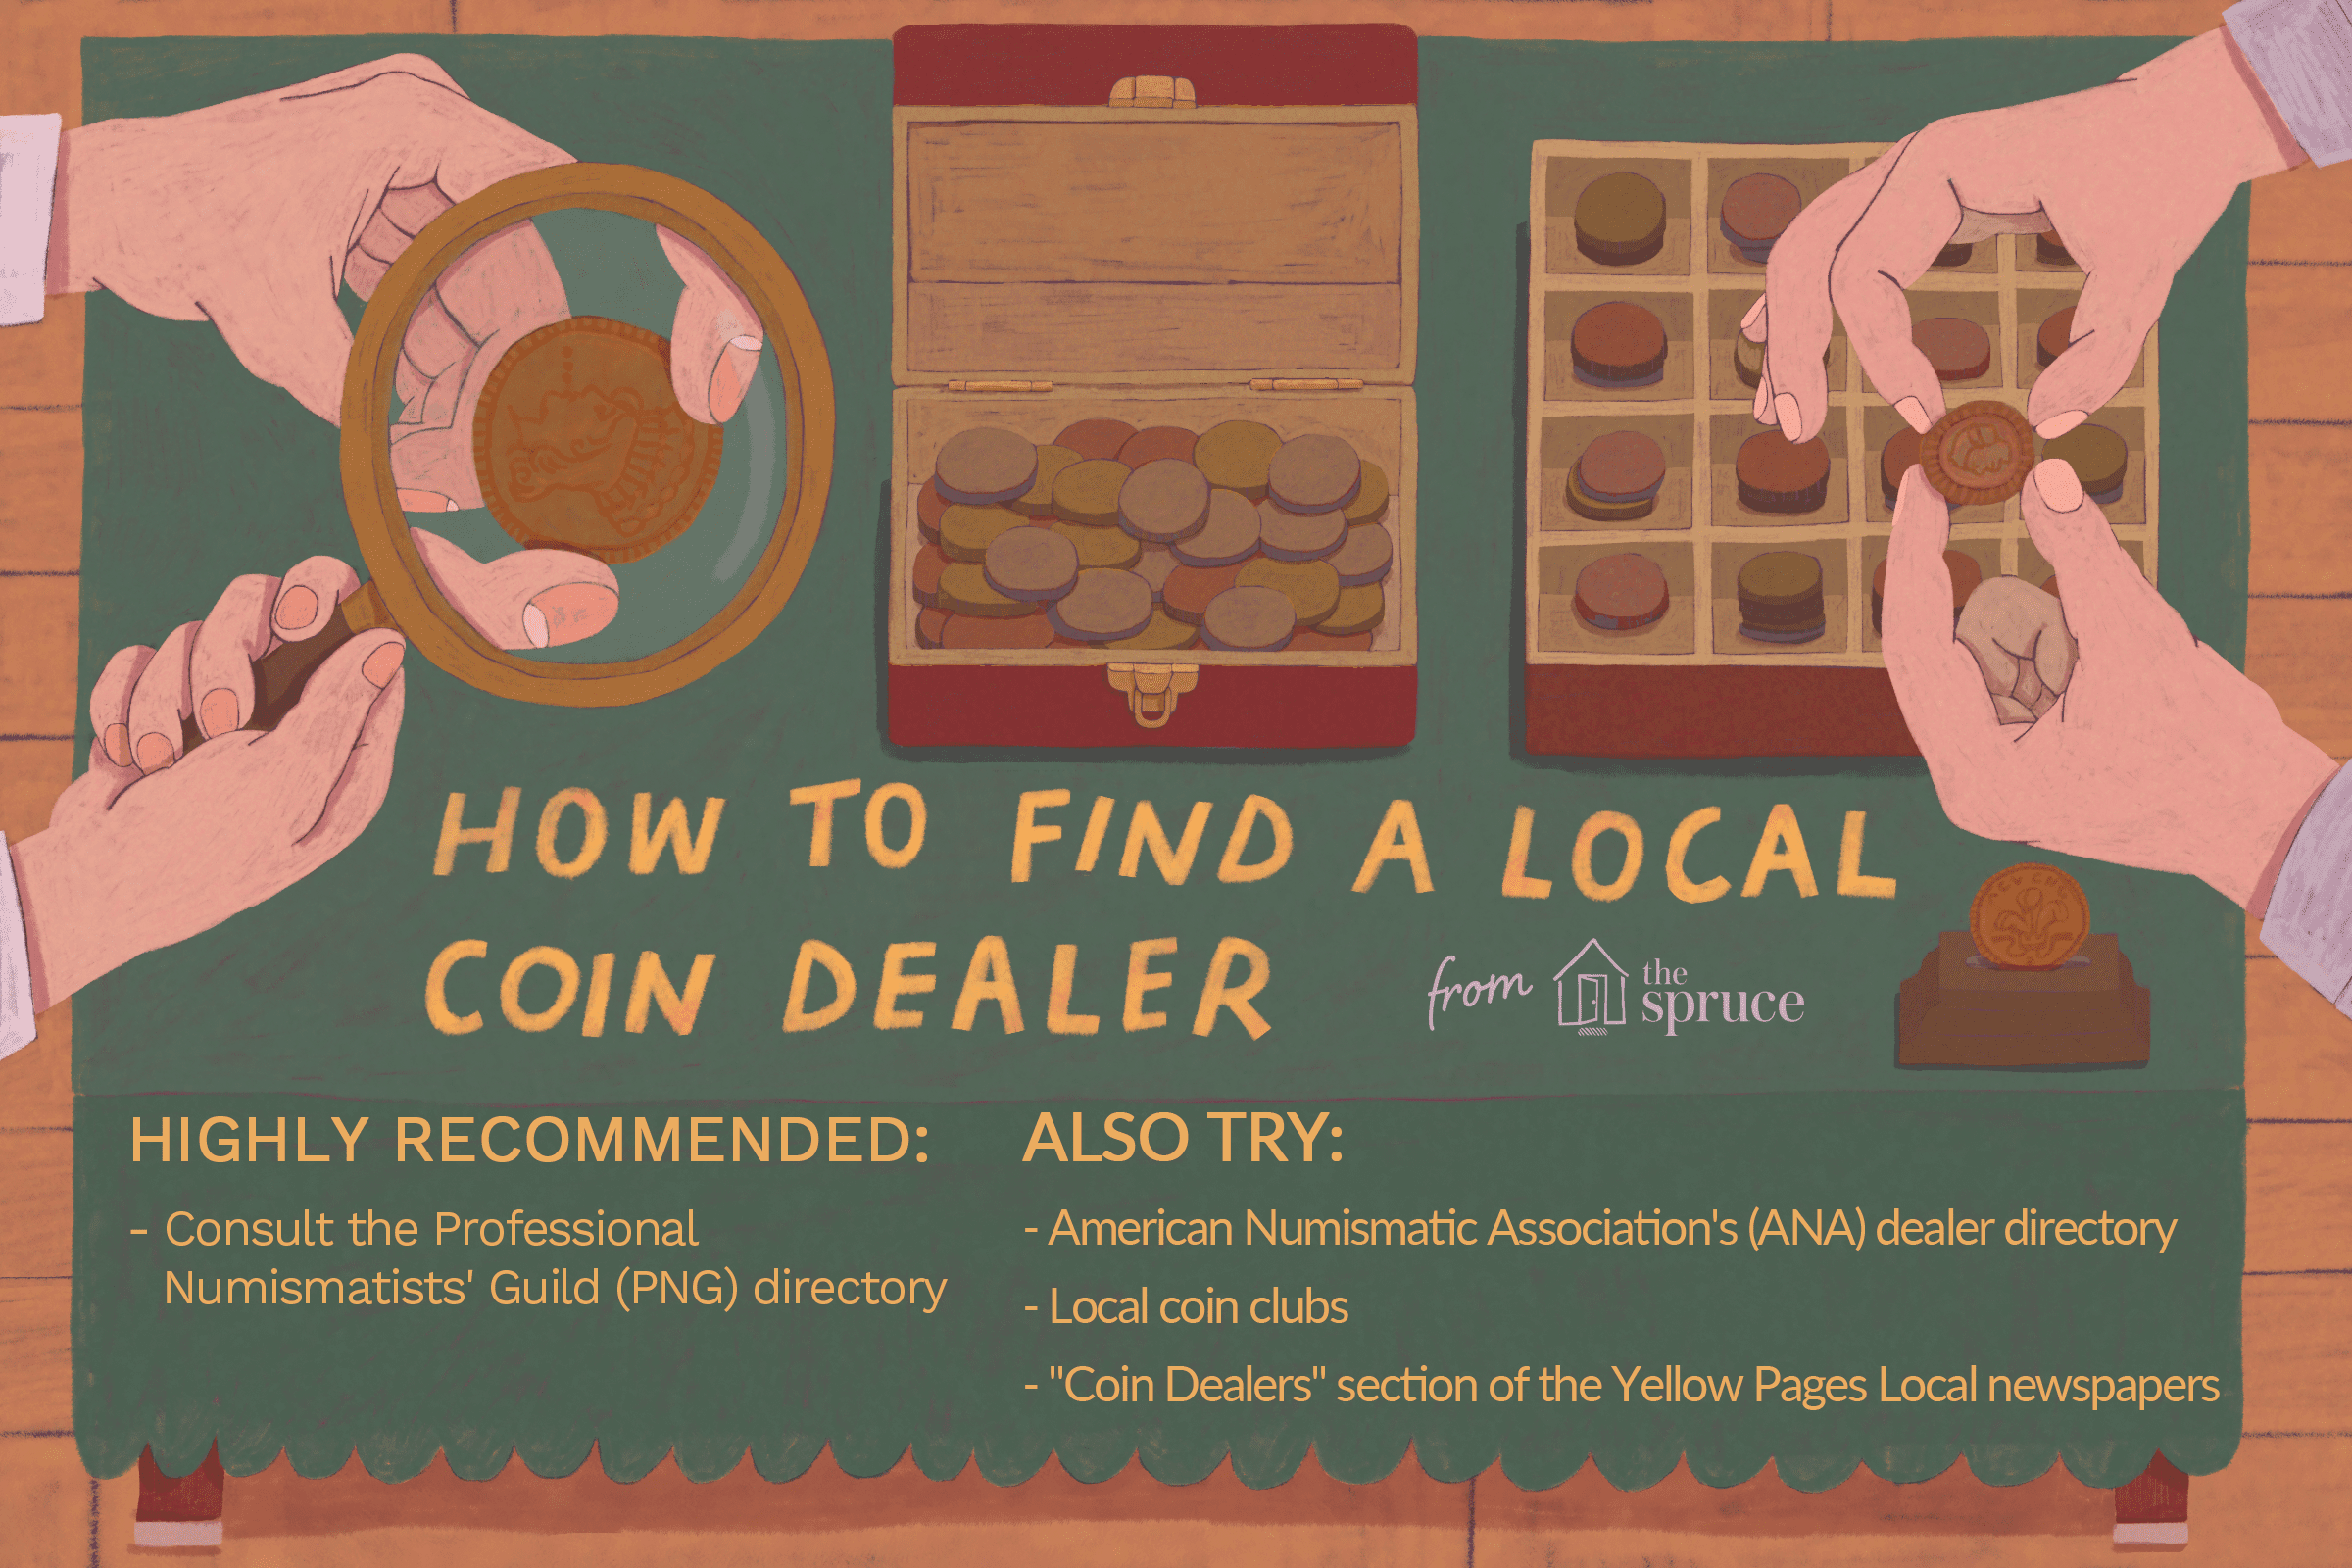 Illustration of hands inspecting coins